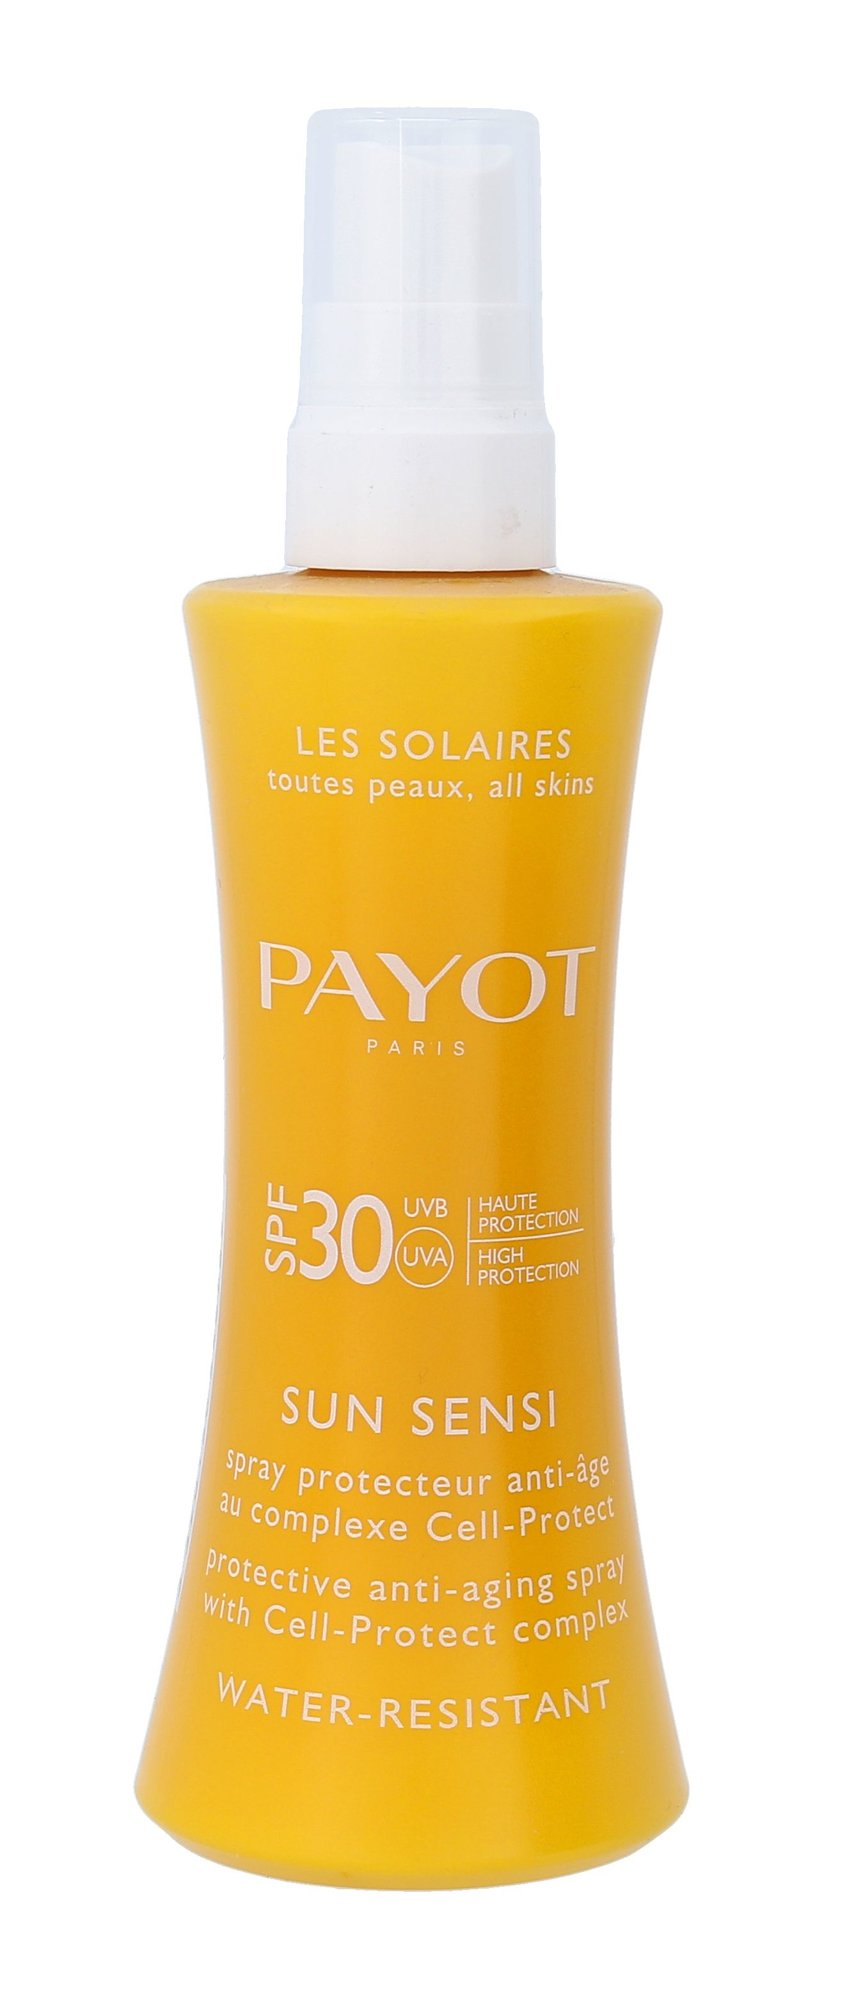 PAYOT Les Solaries Cosmetic 125ml